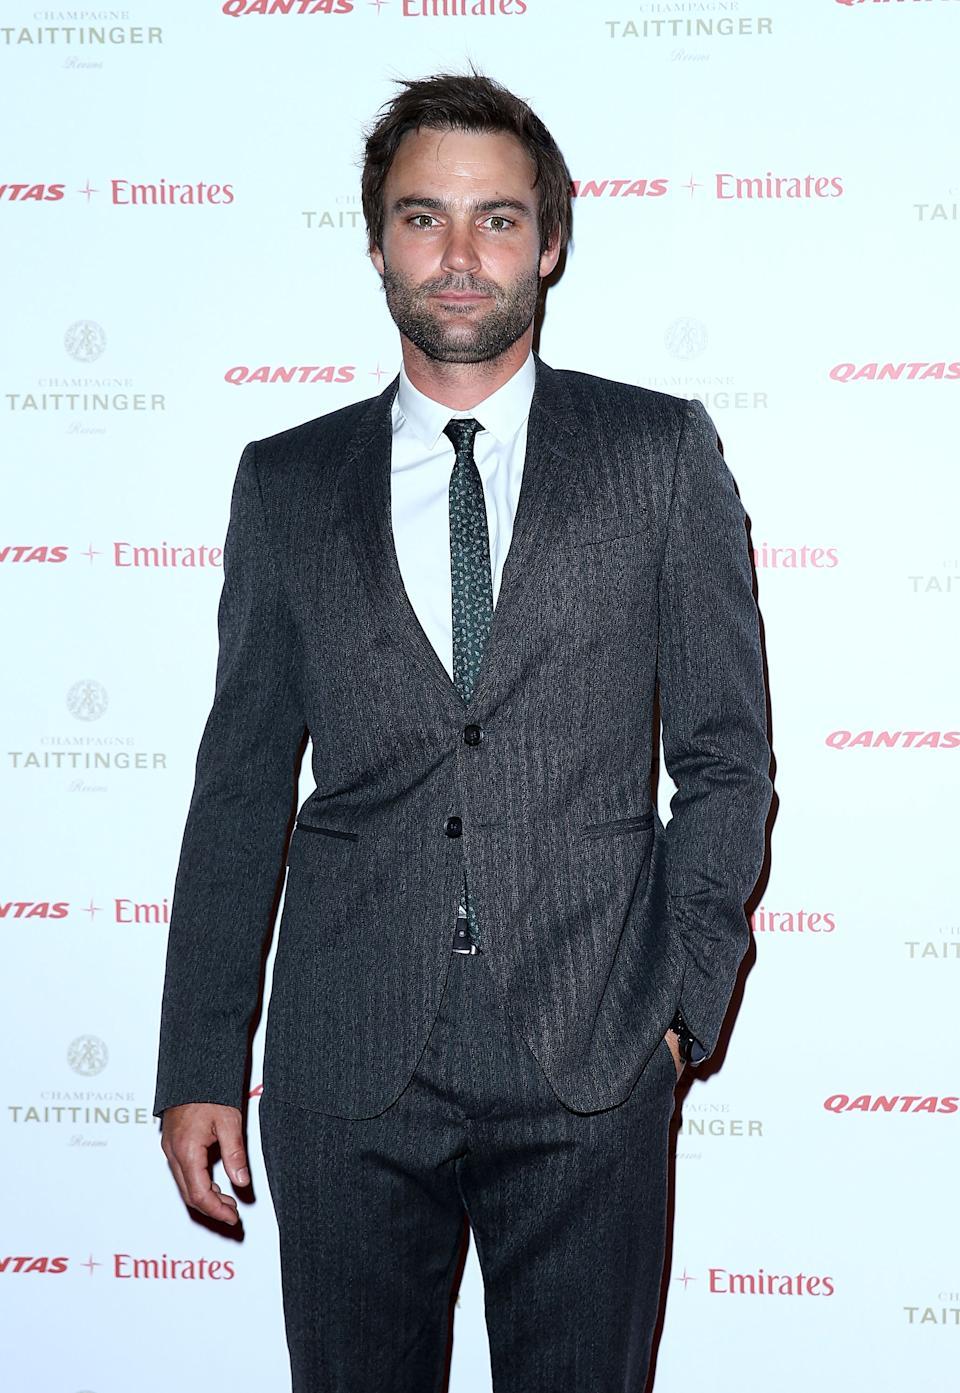 SYDNEY, AUSTRALIA - APRIL 18:  Actor Matt Le Nevez attends the QANTAS Gala Dinner at Sydney Domestic Airport on April 18, 2013 in Sydney, Australia.  (Photo by Marianna Massey/Getty Images)